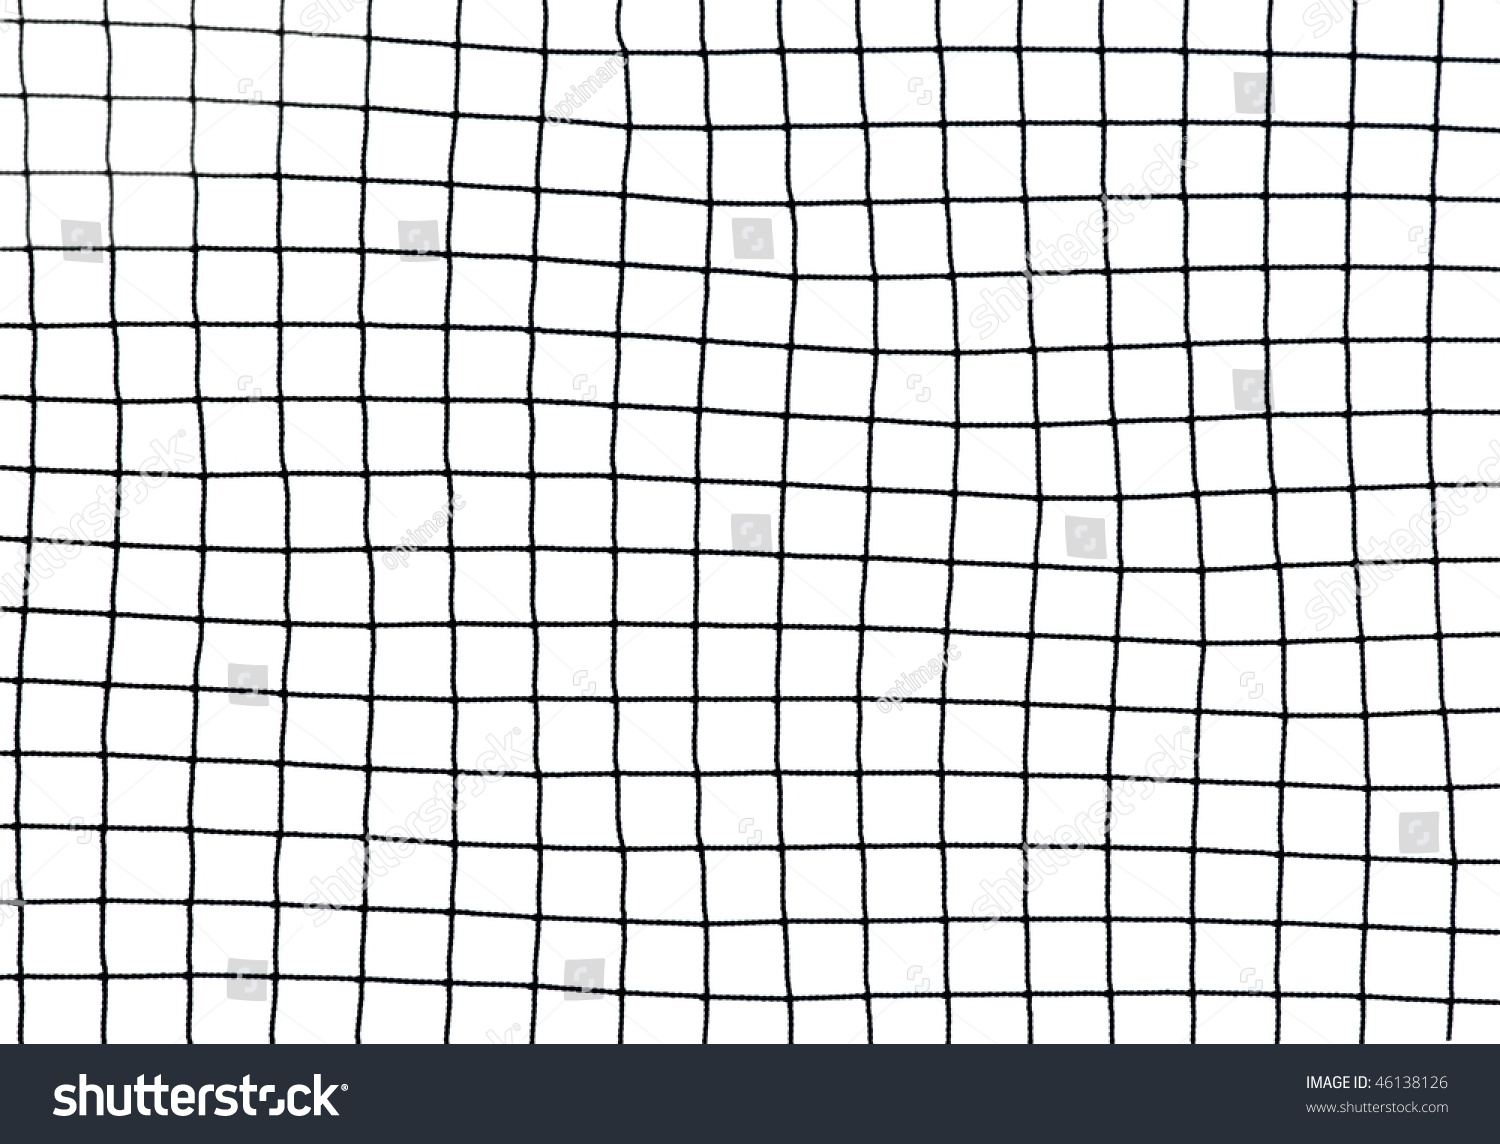 Black Soccer Net Texture Isolated On Stock Photo 46138126